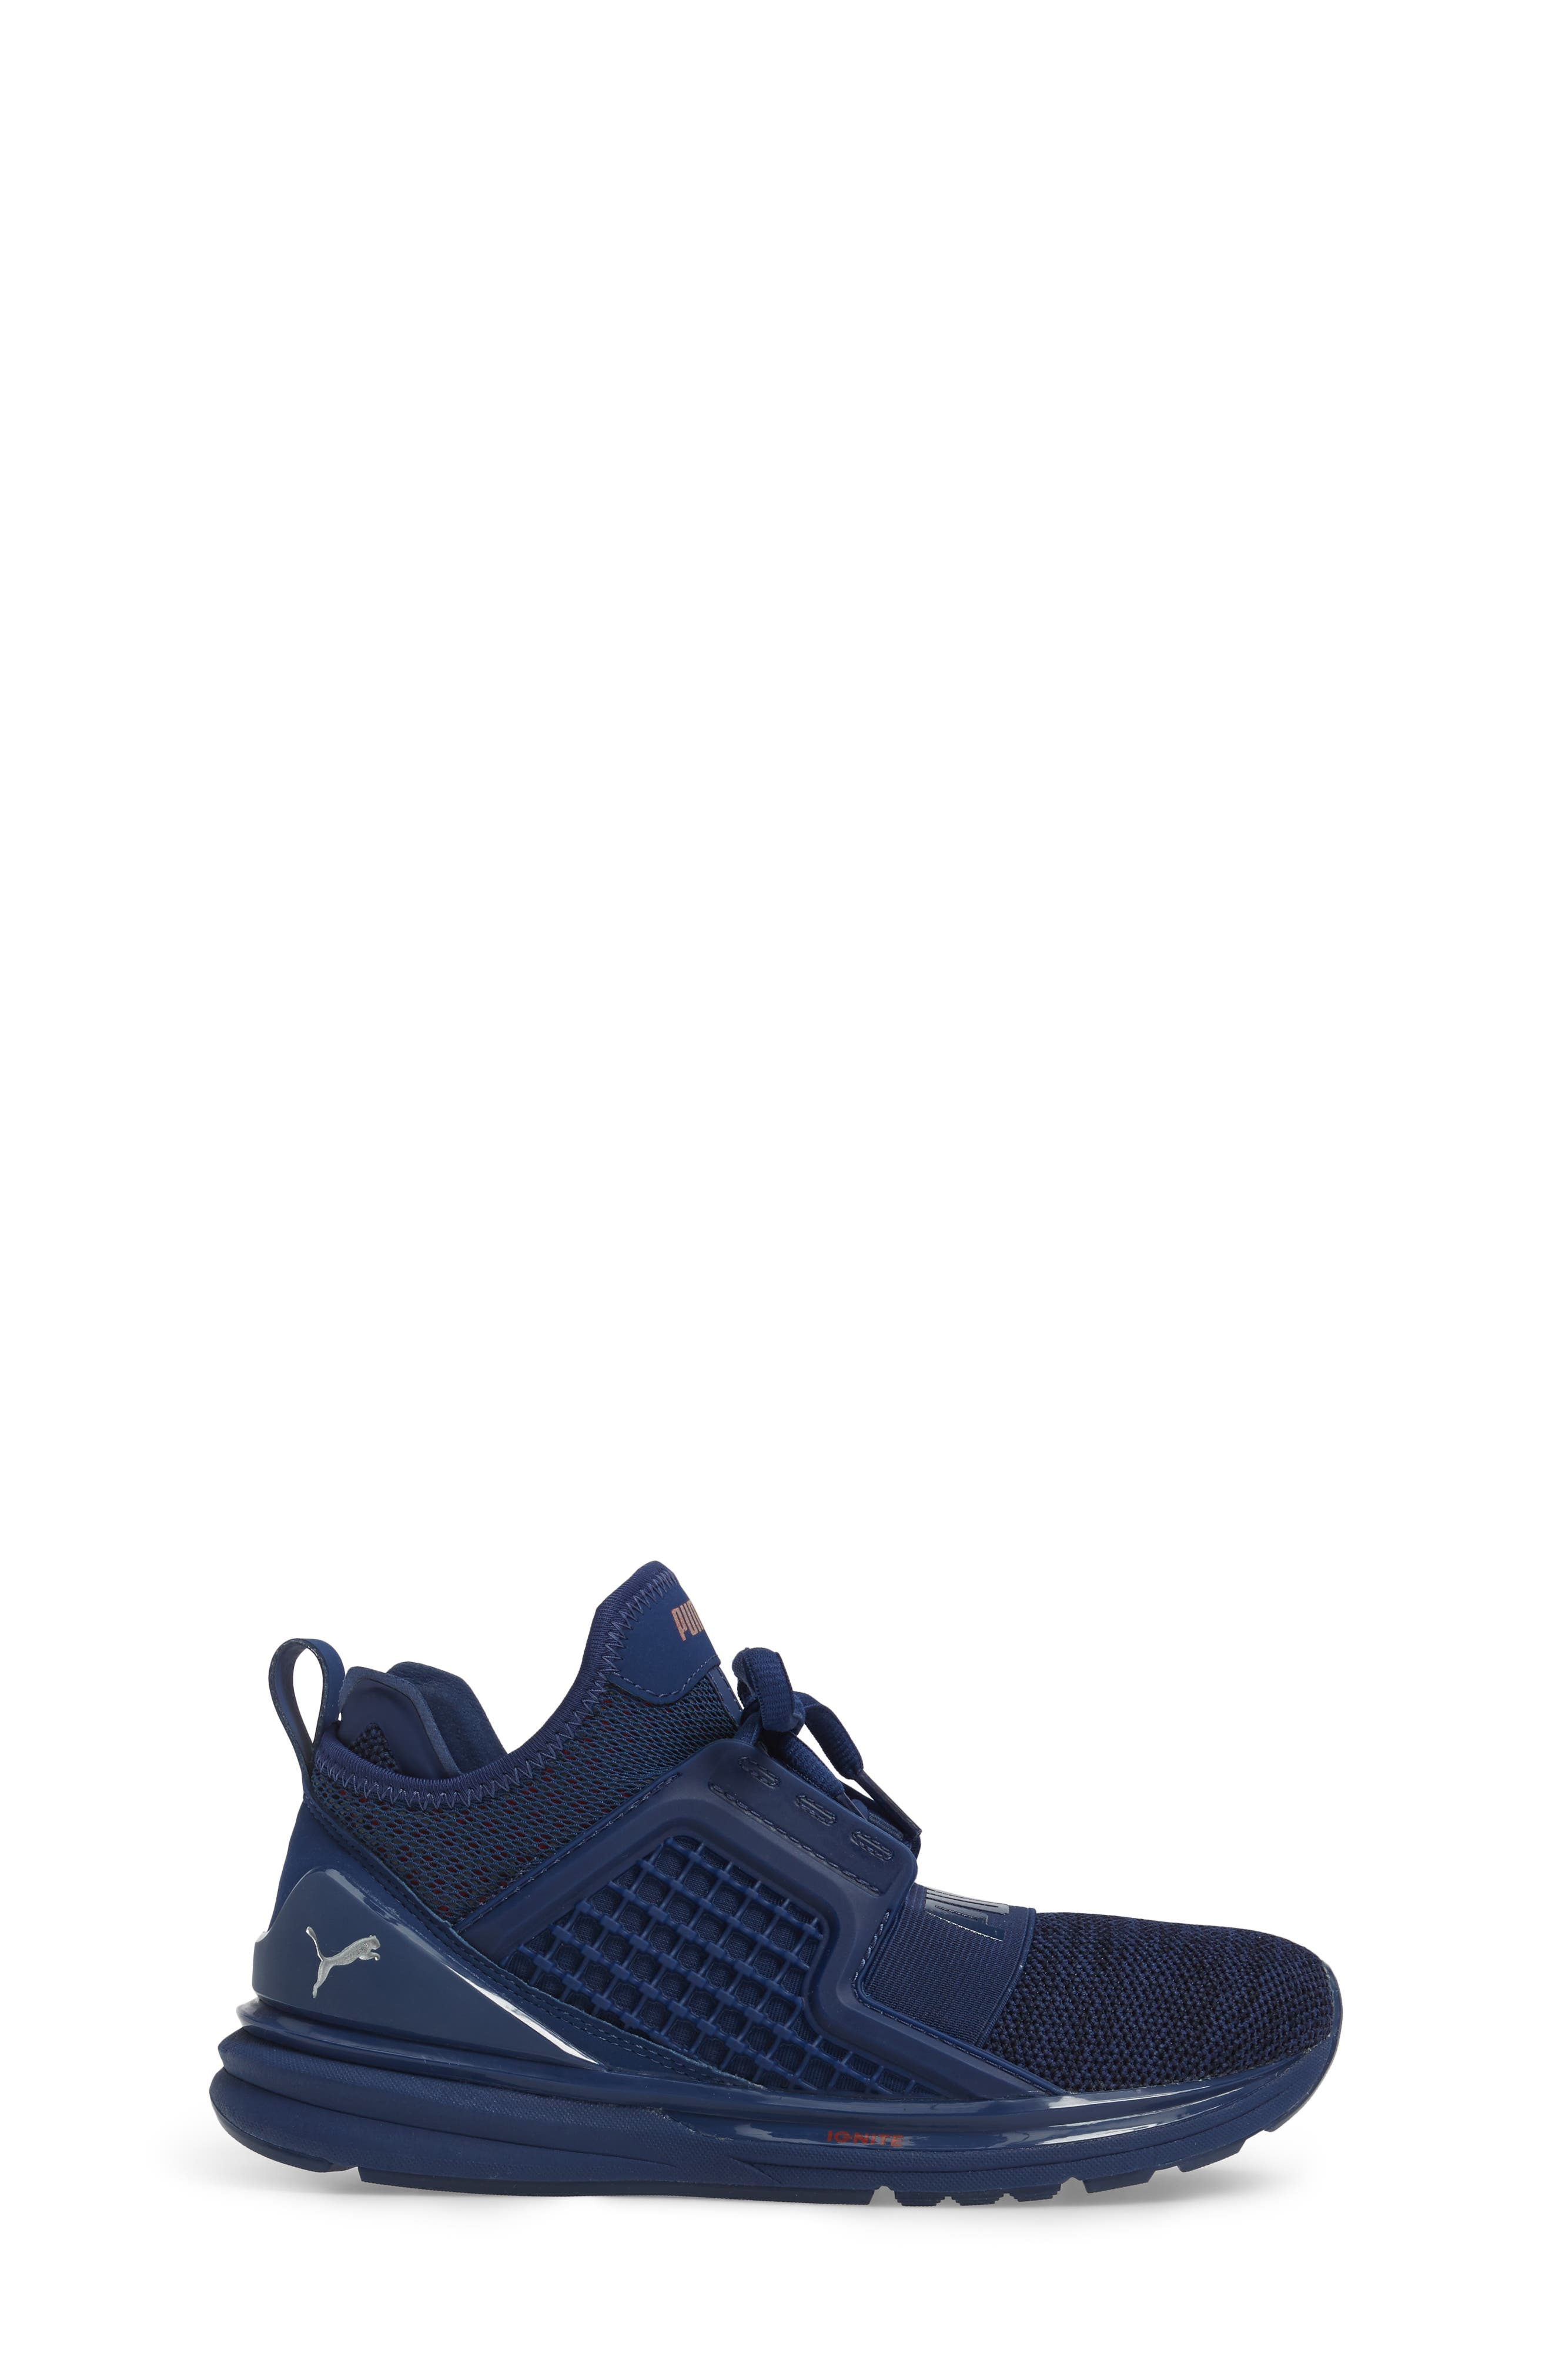 Ignite Limitless Sneaker,                             Alternate thumbnail 3, color,                             Blue